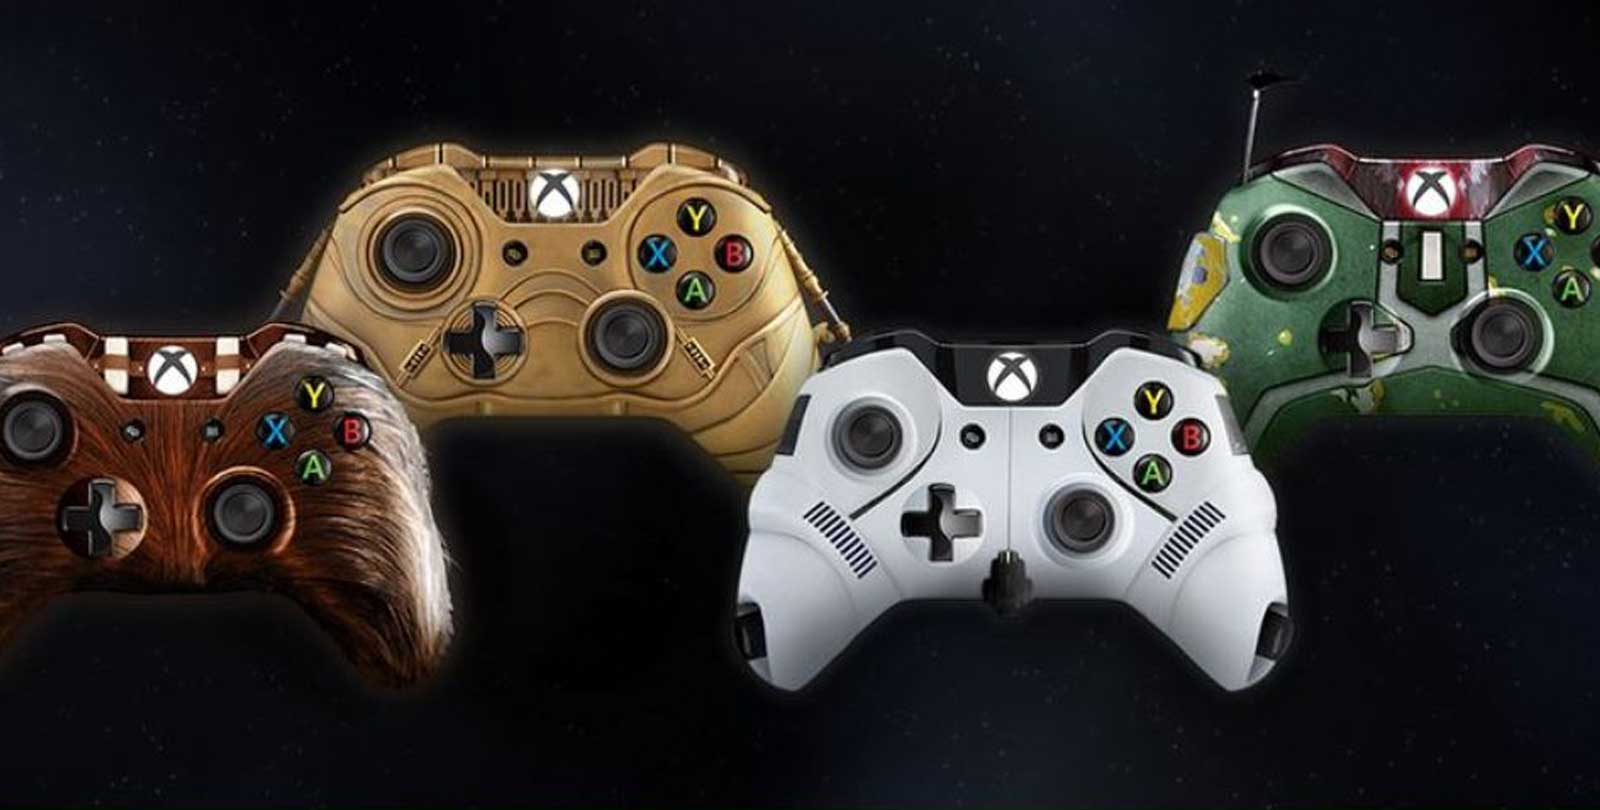 Microsoft Teases Xbox One Owners with Stunning Star Wars Controllers